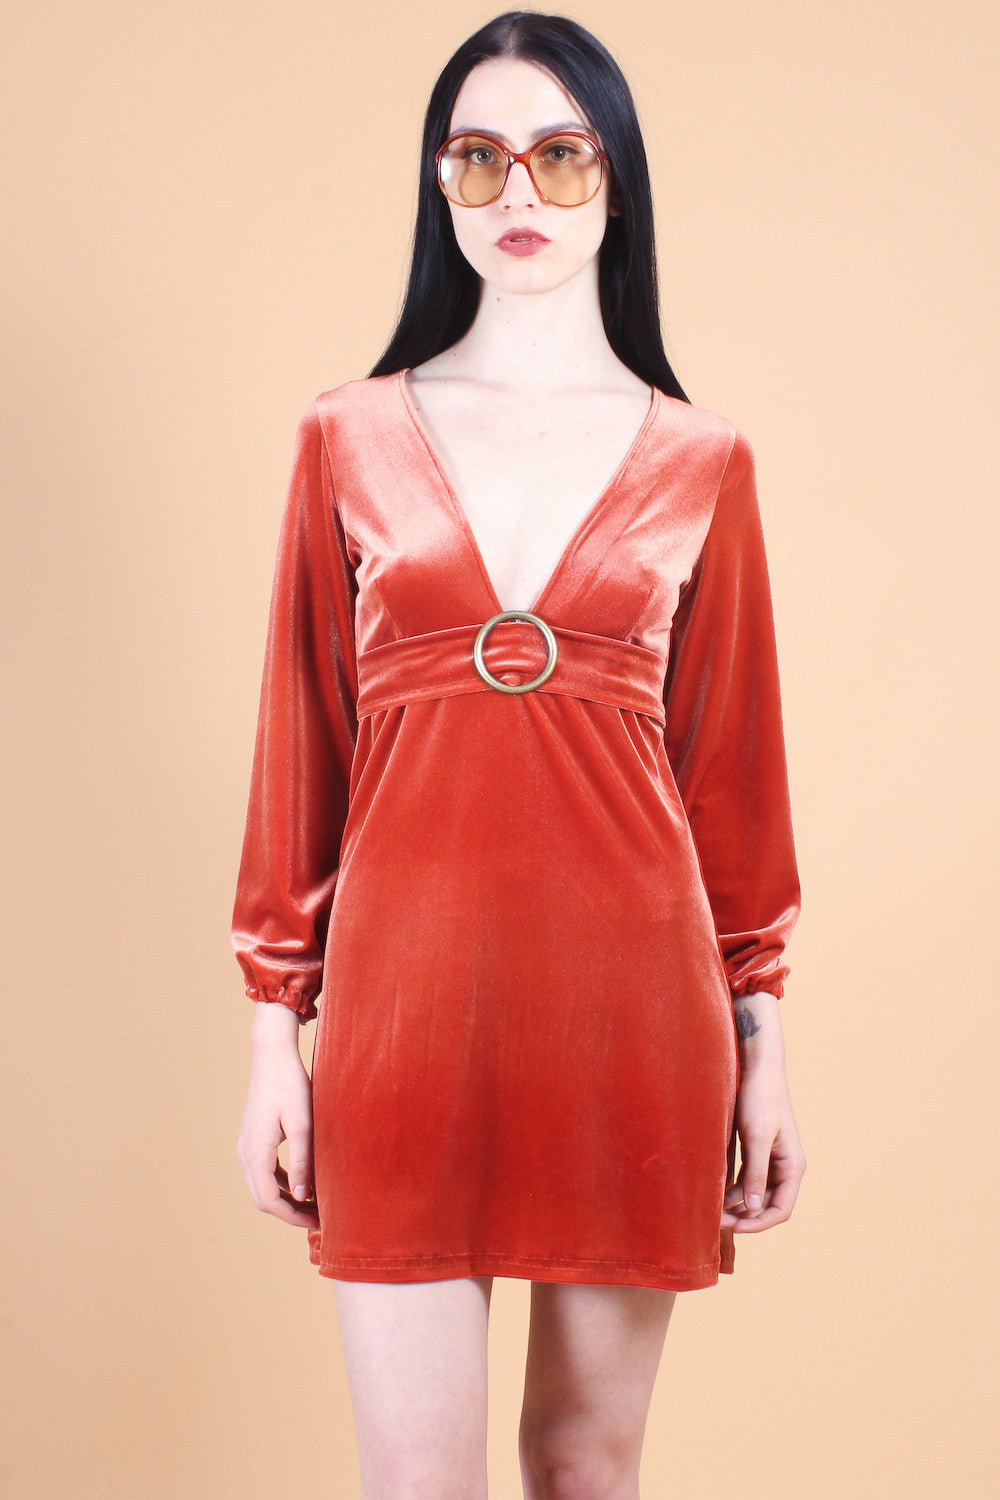 Marianne Faithfull Velvet Dress in Peach